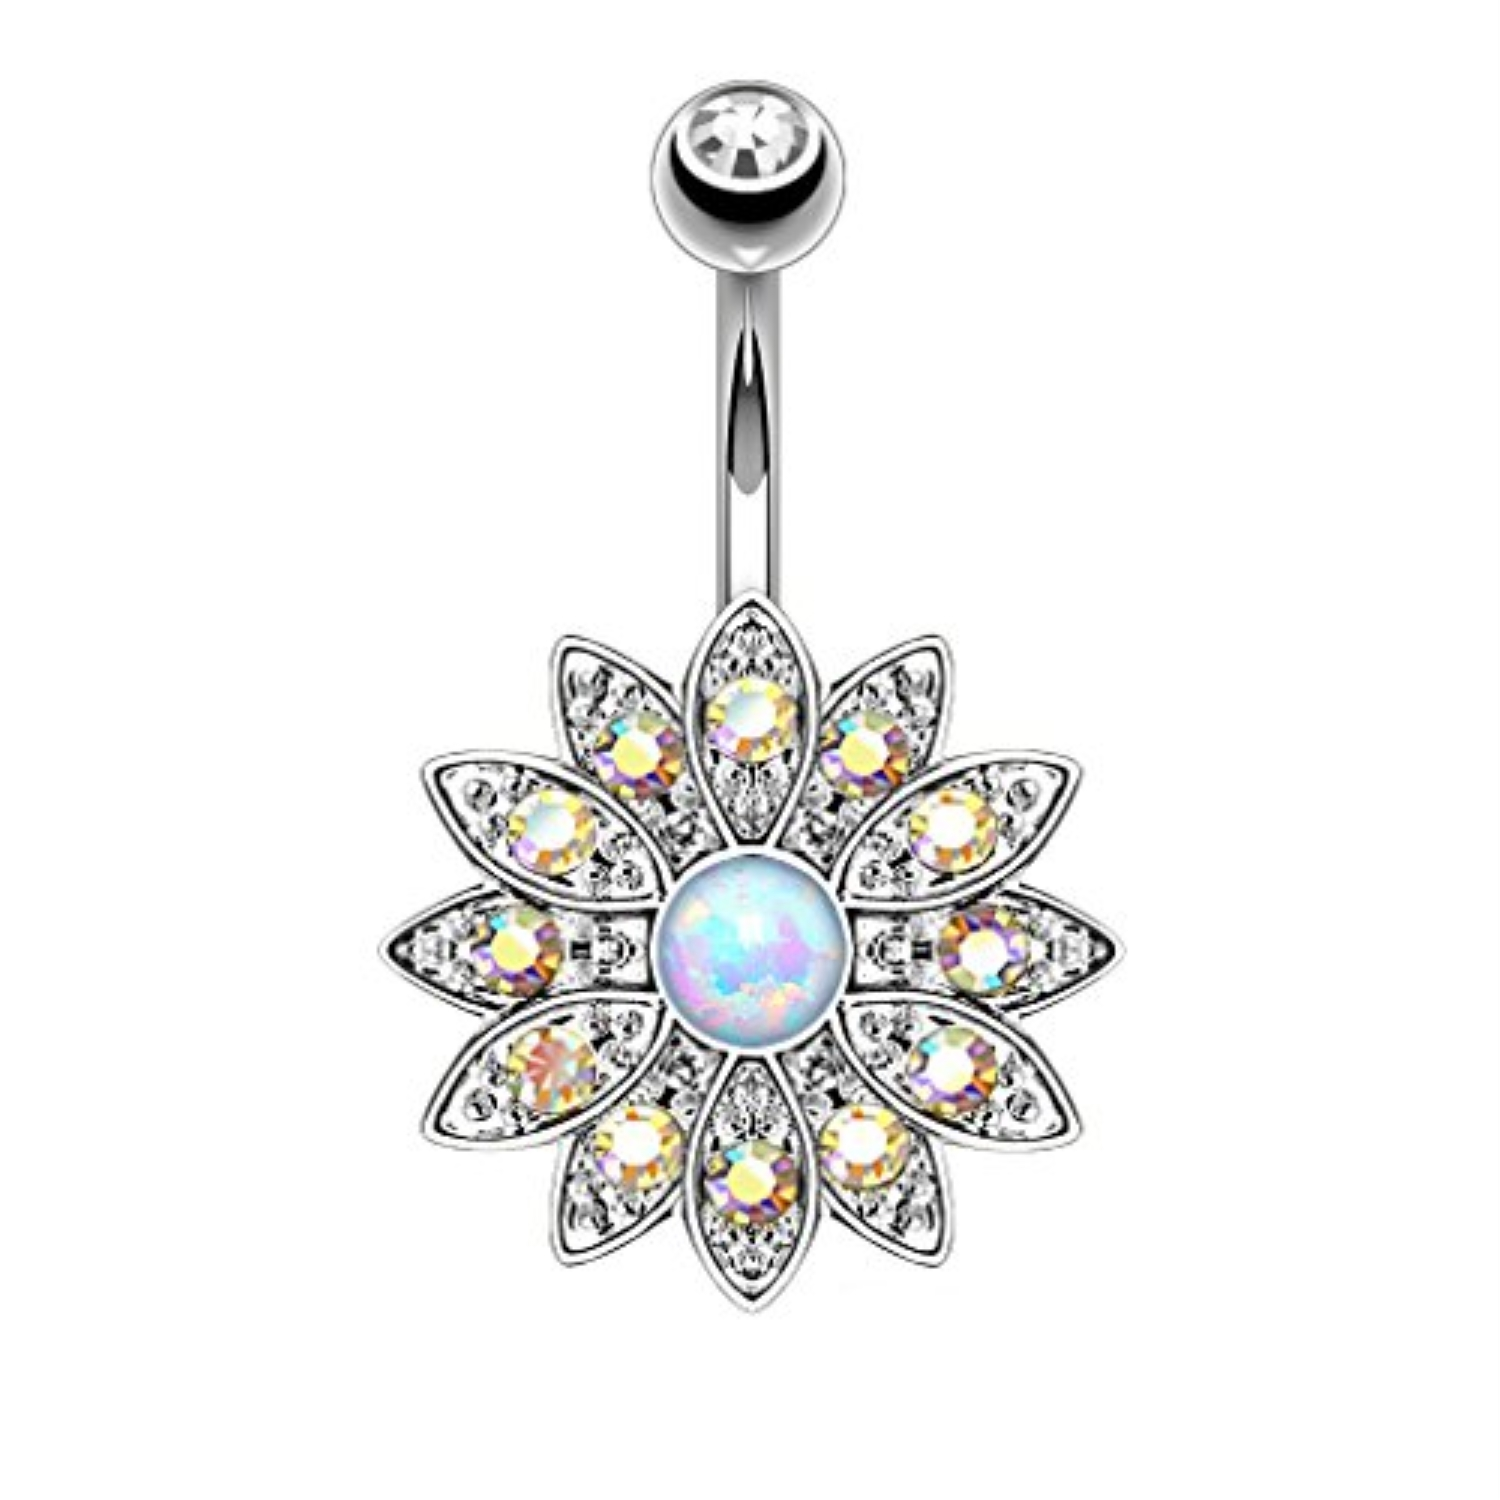 BodyJ4You® Belly Button Ring Opal Flower Aurora Jeweled Piercing Jewelry 14G